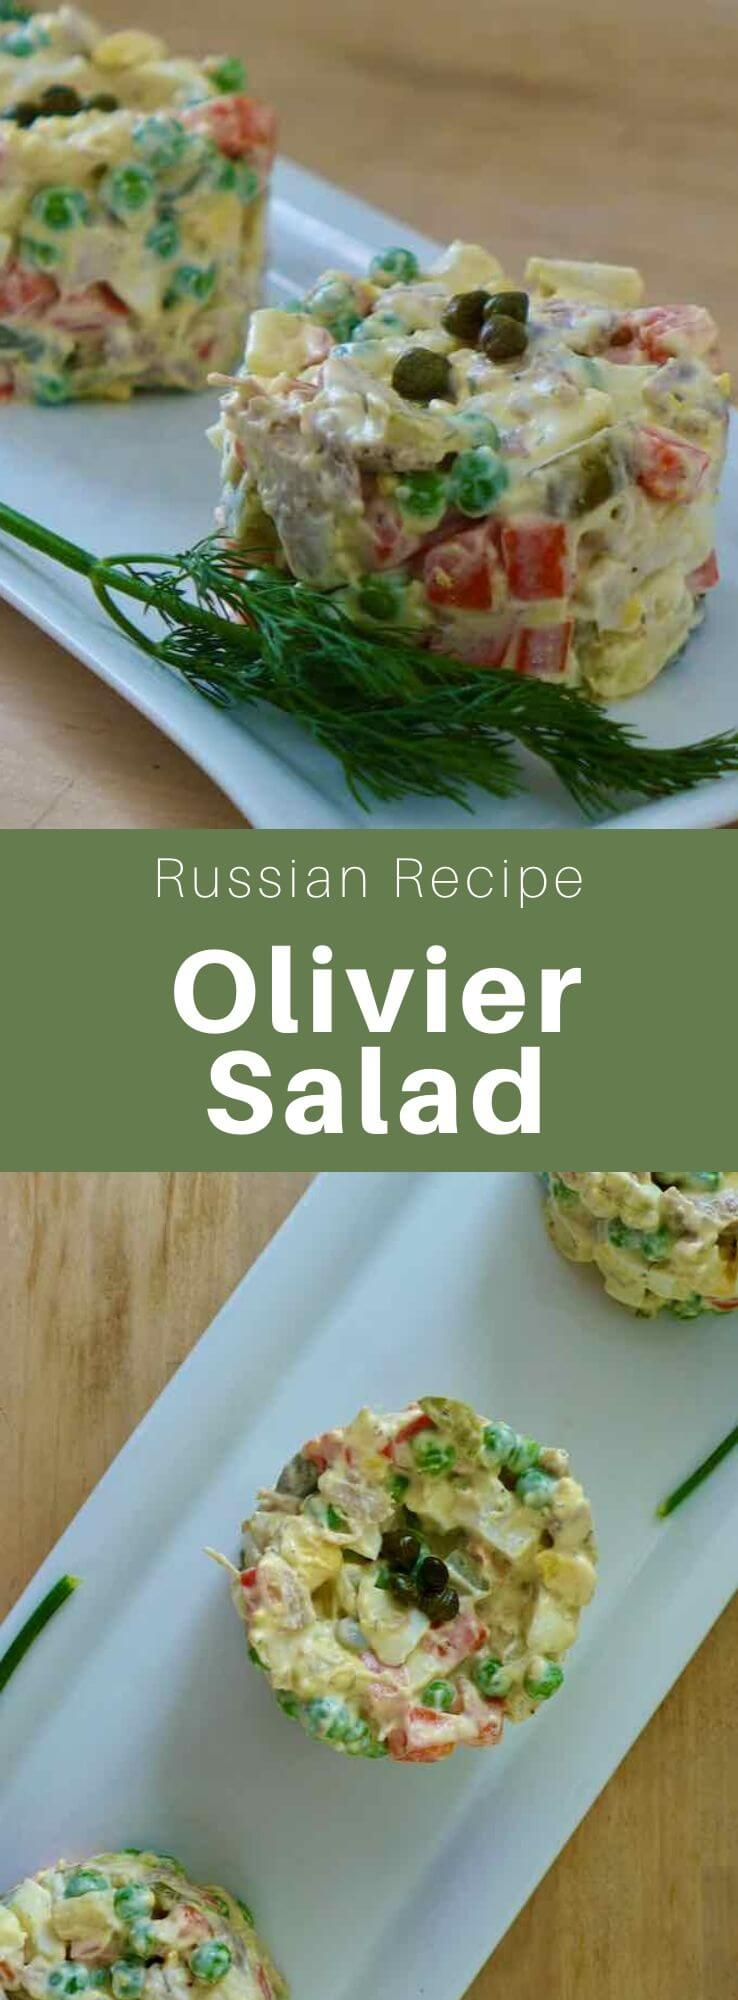 The original version of Olivier Salad was created by Lucien Olivier in the 1860s. It consists of diced potatoes, vegetables, eggs, chicken and mayo. #Russia #RussianCuisine #RussianRecipe #RussianFood #WorldCuisine #196flavors